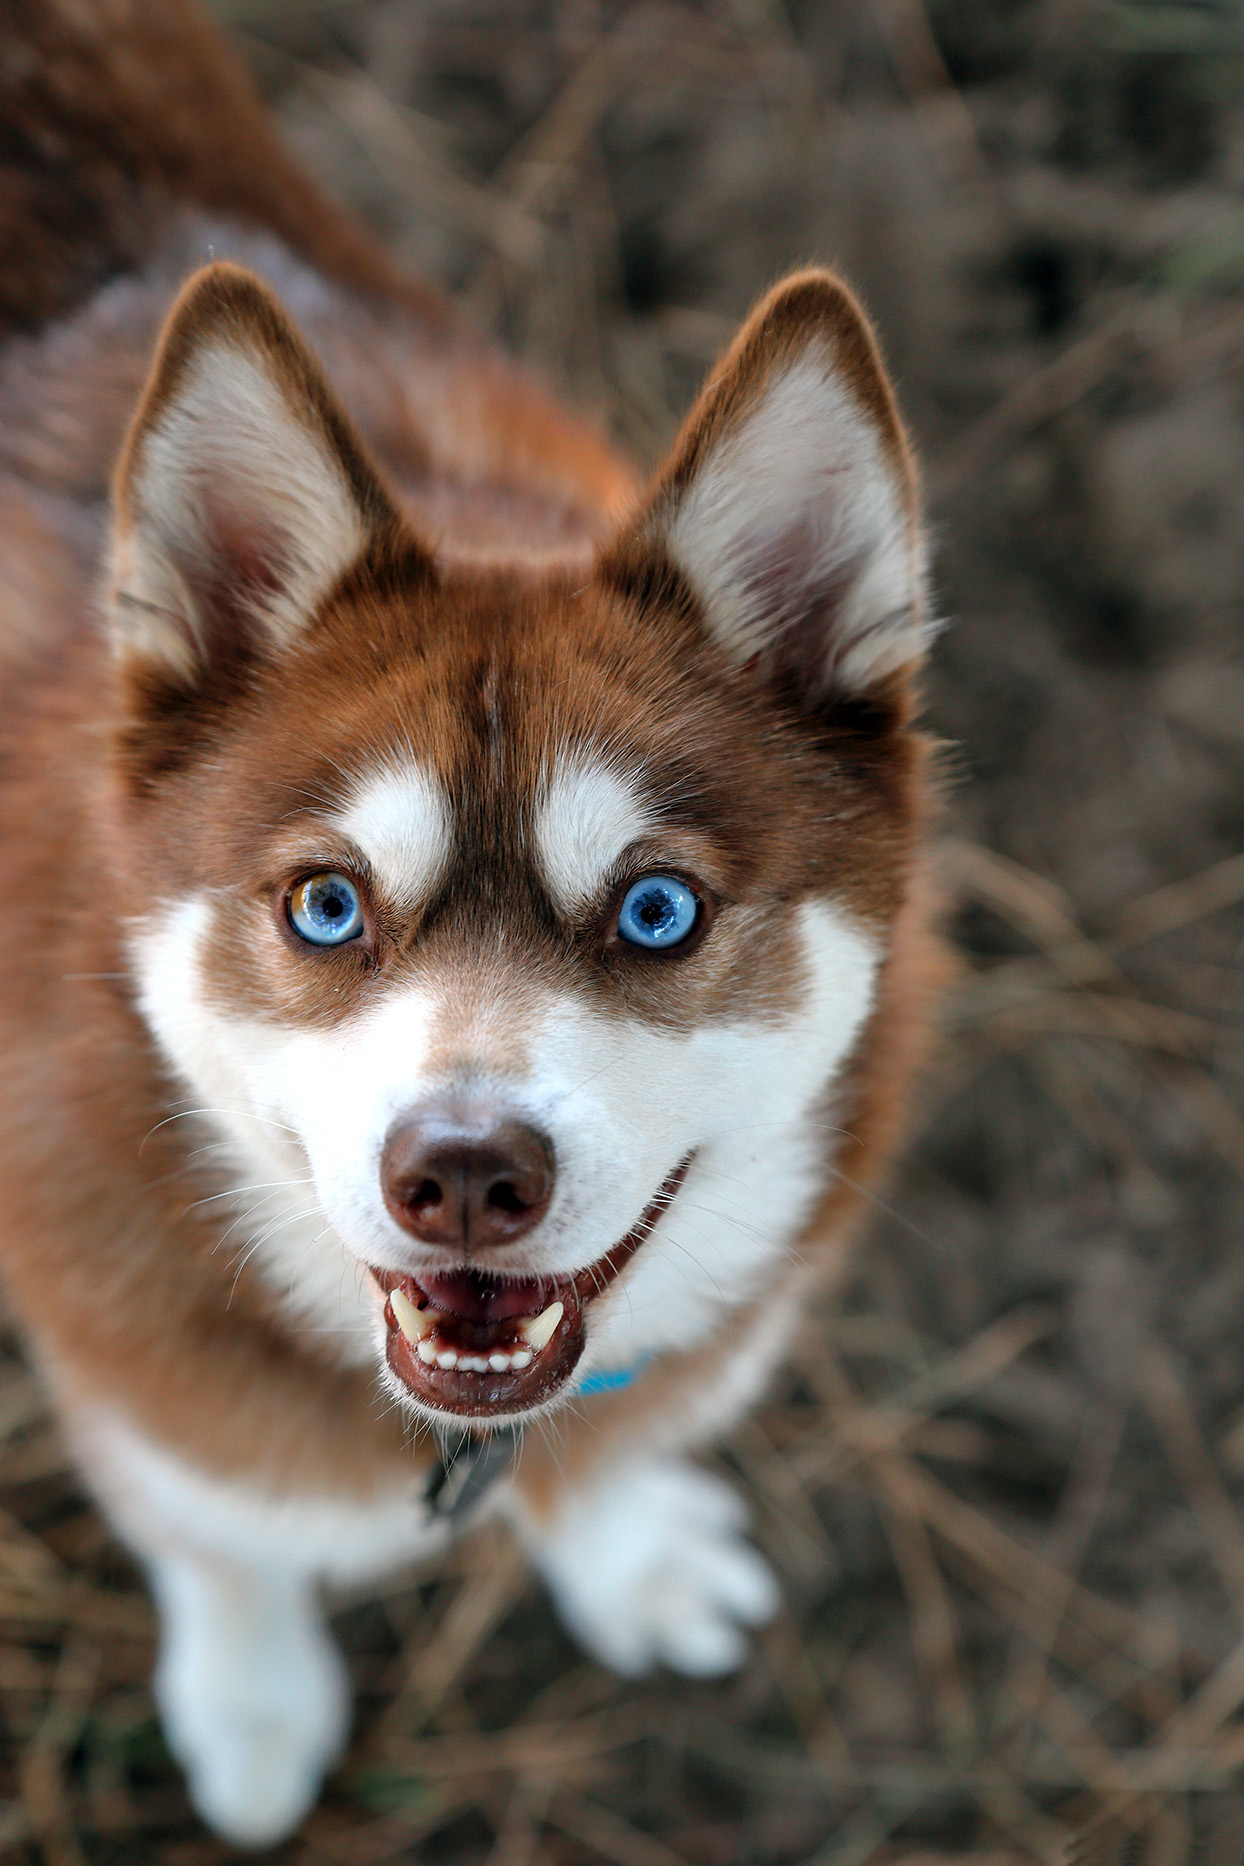 Red and white Alaskan Klee Kai portrait from above